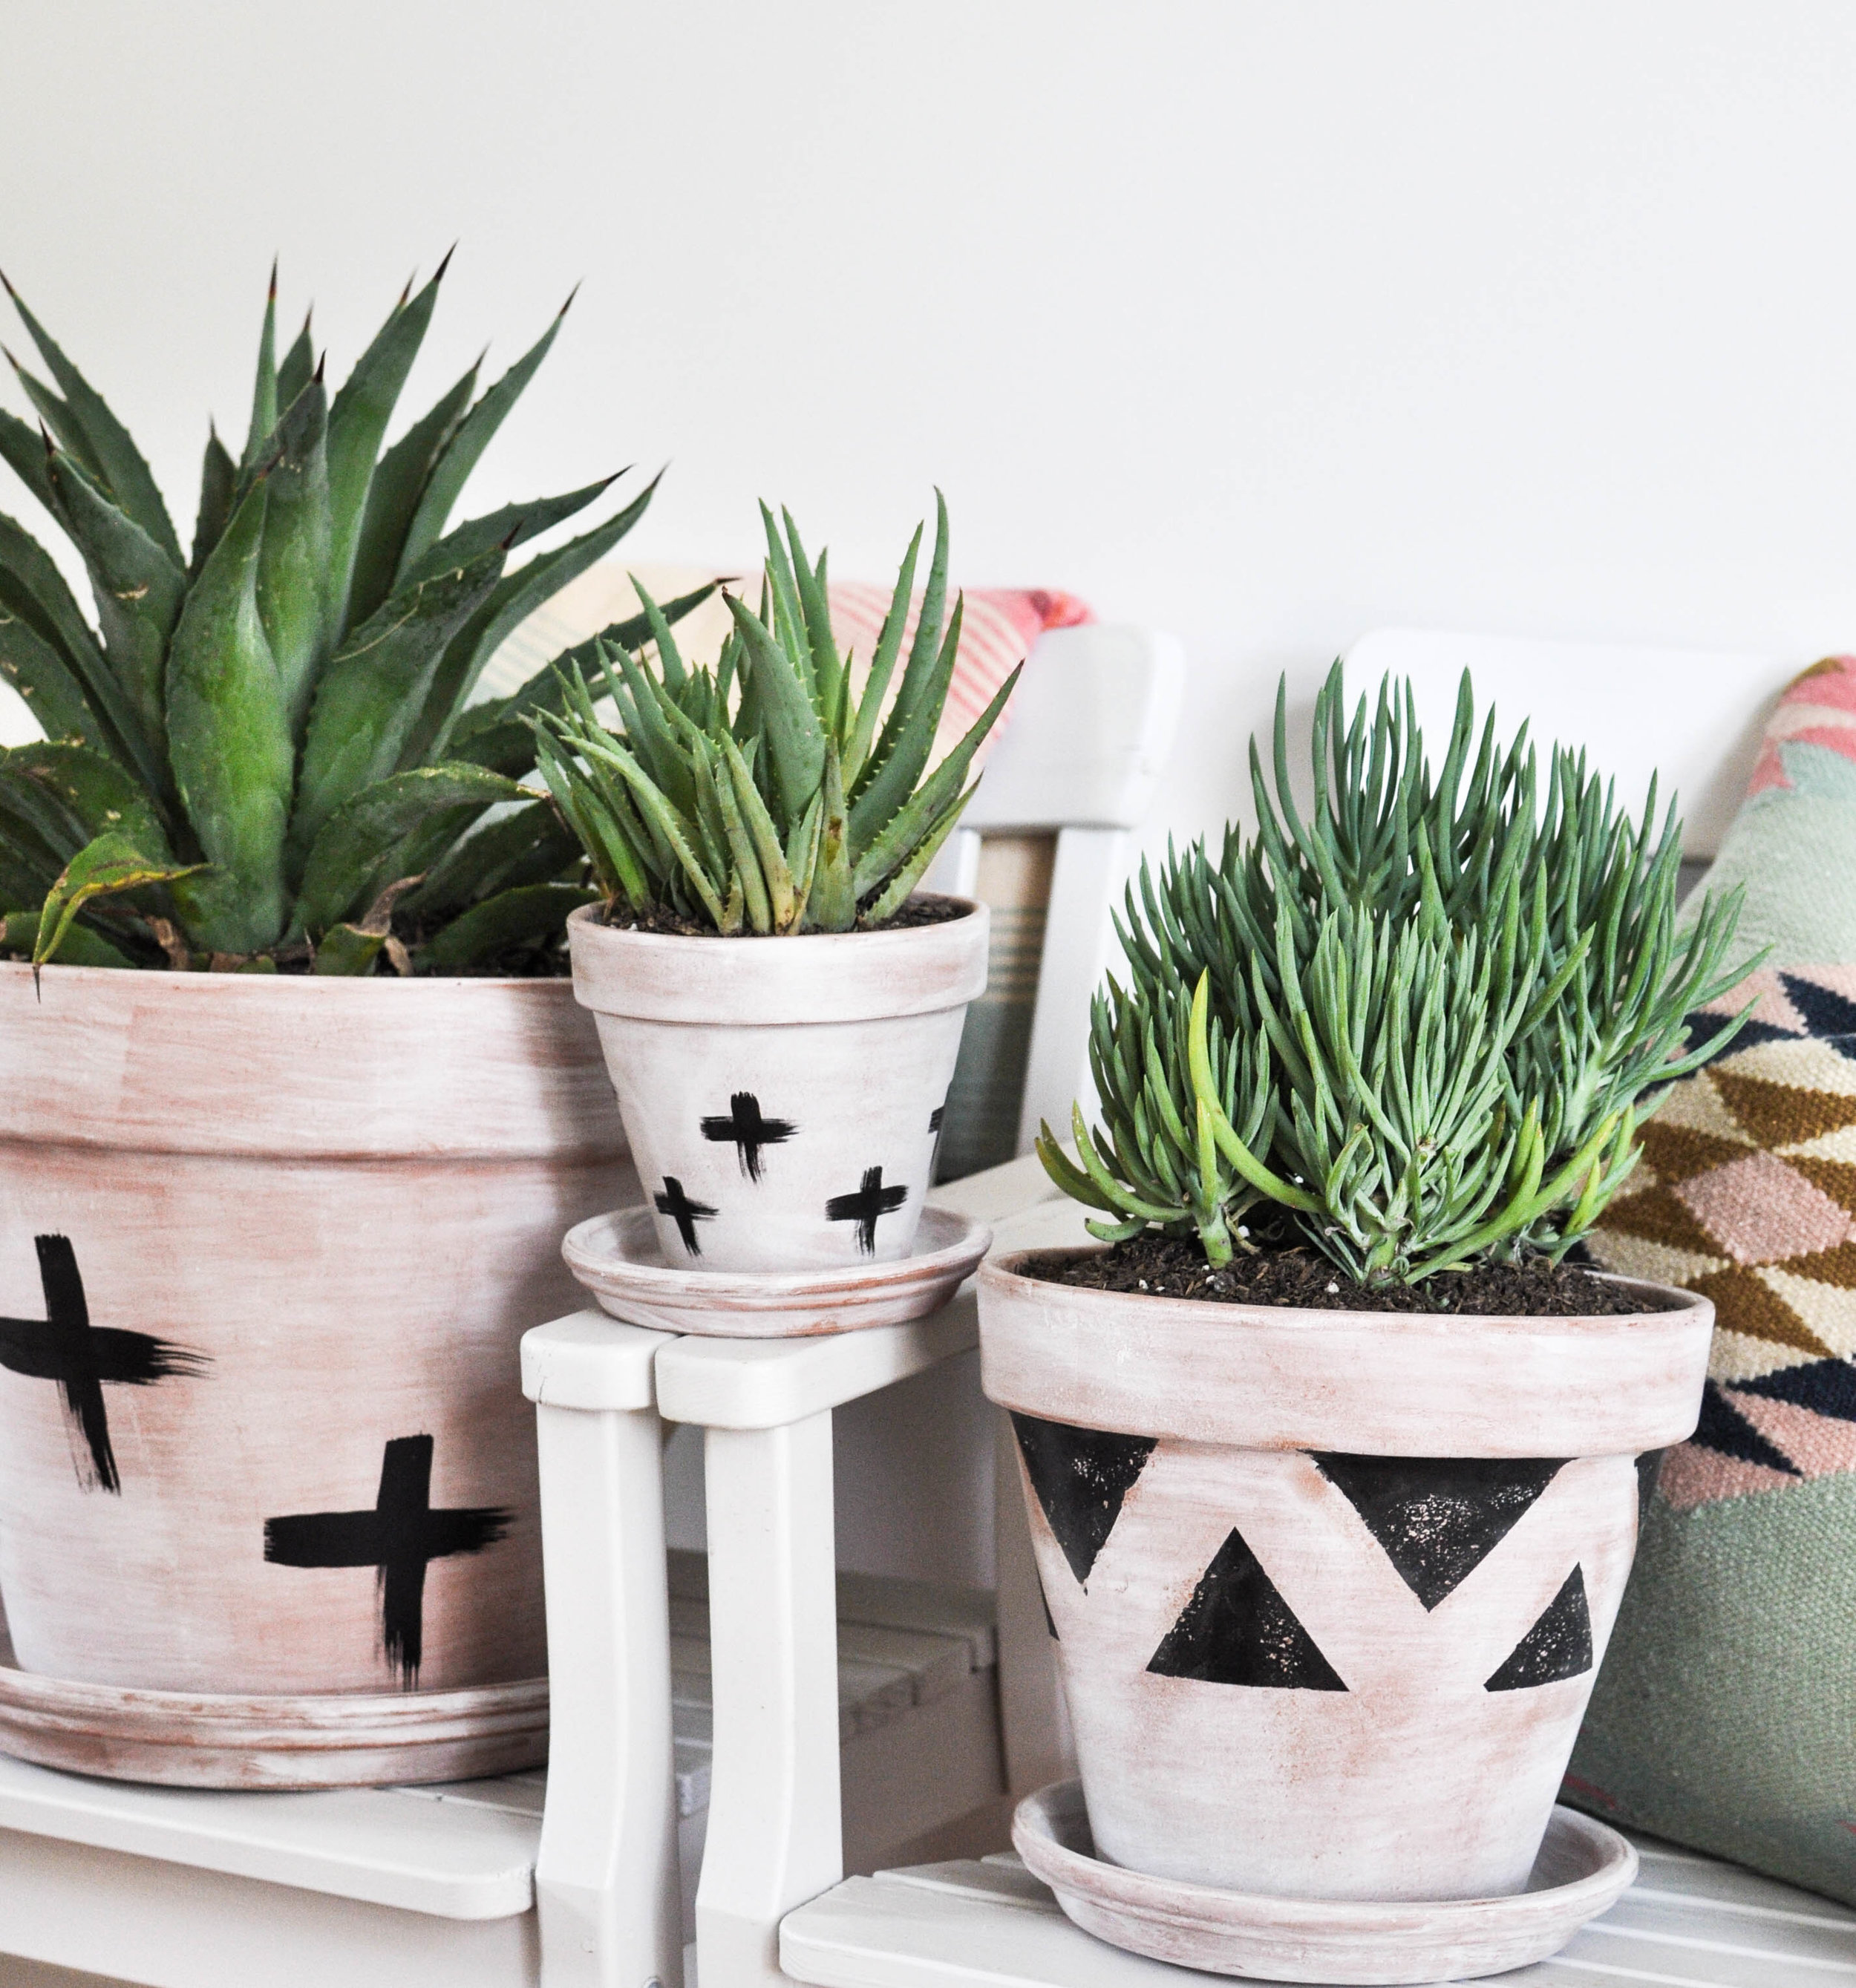 Cactus decor in terra cotta pots